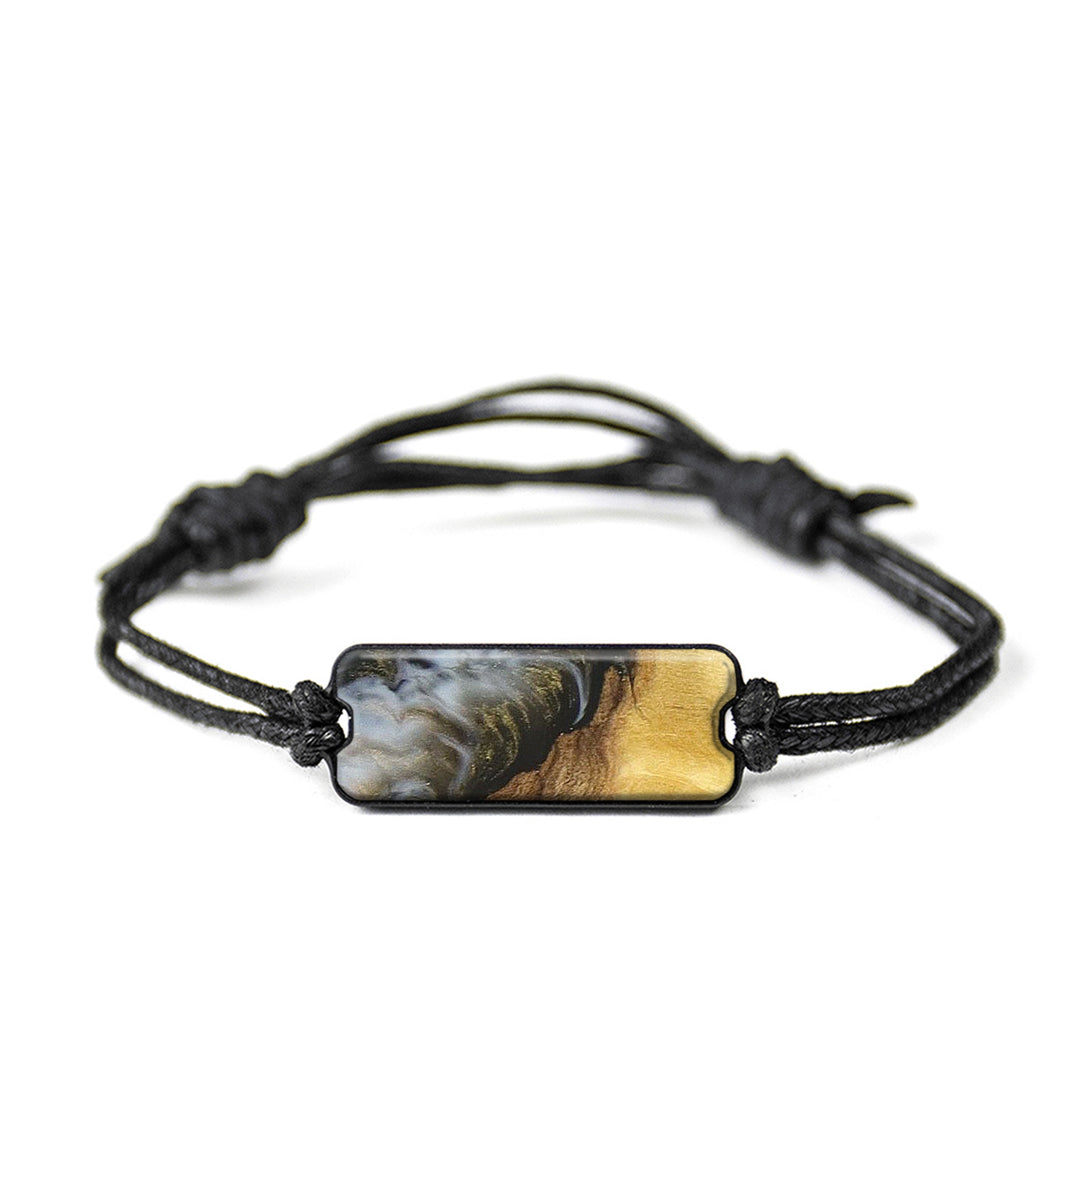 Classic Wood+Resin Bracelet - Gene (Black & White, 348720)